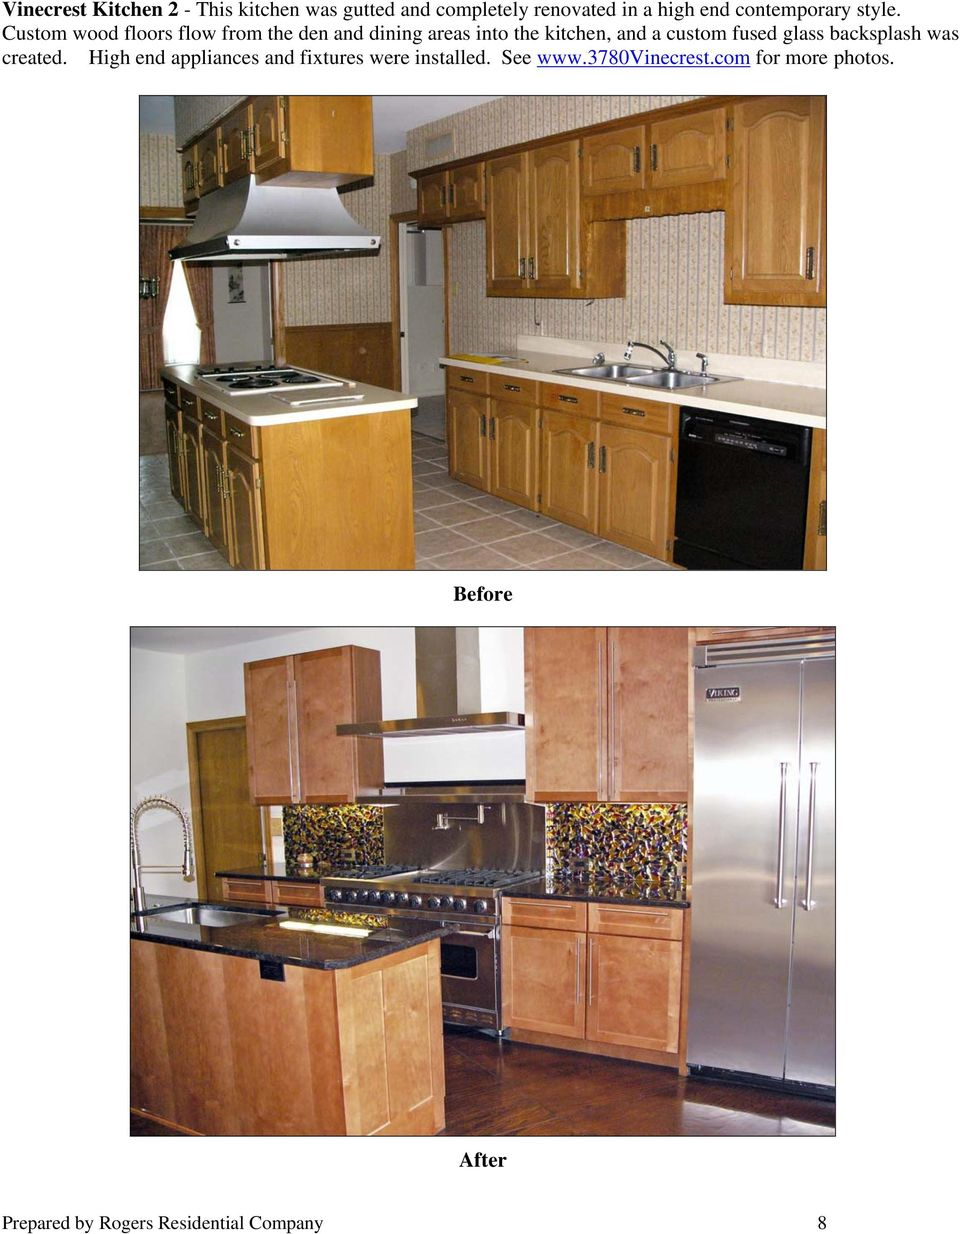 Custom wood floors flow from the den and dining areas into the kitchen, and a custom